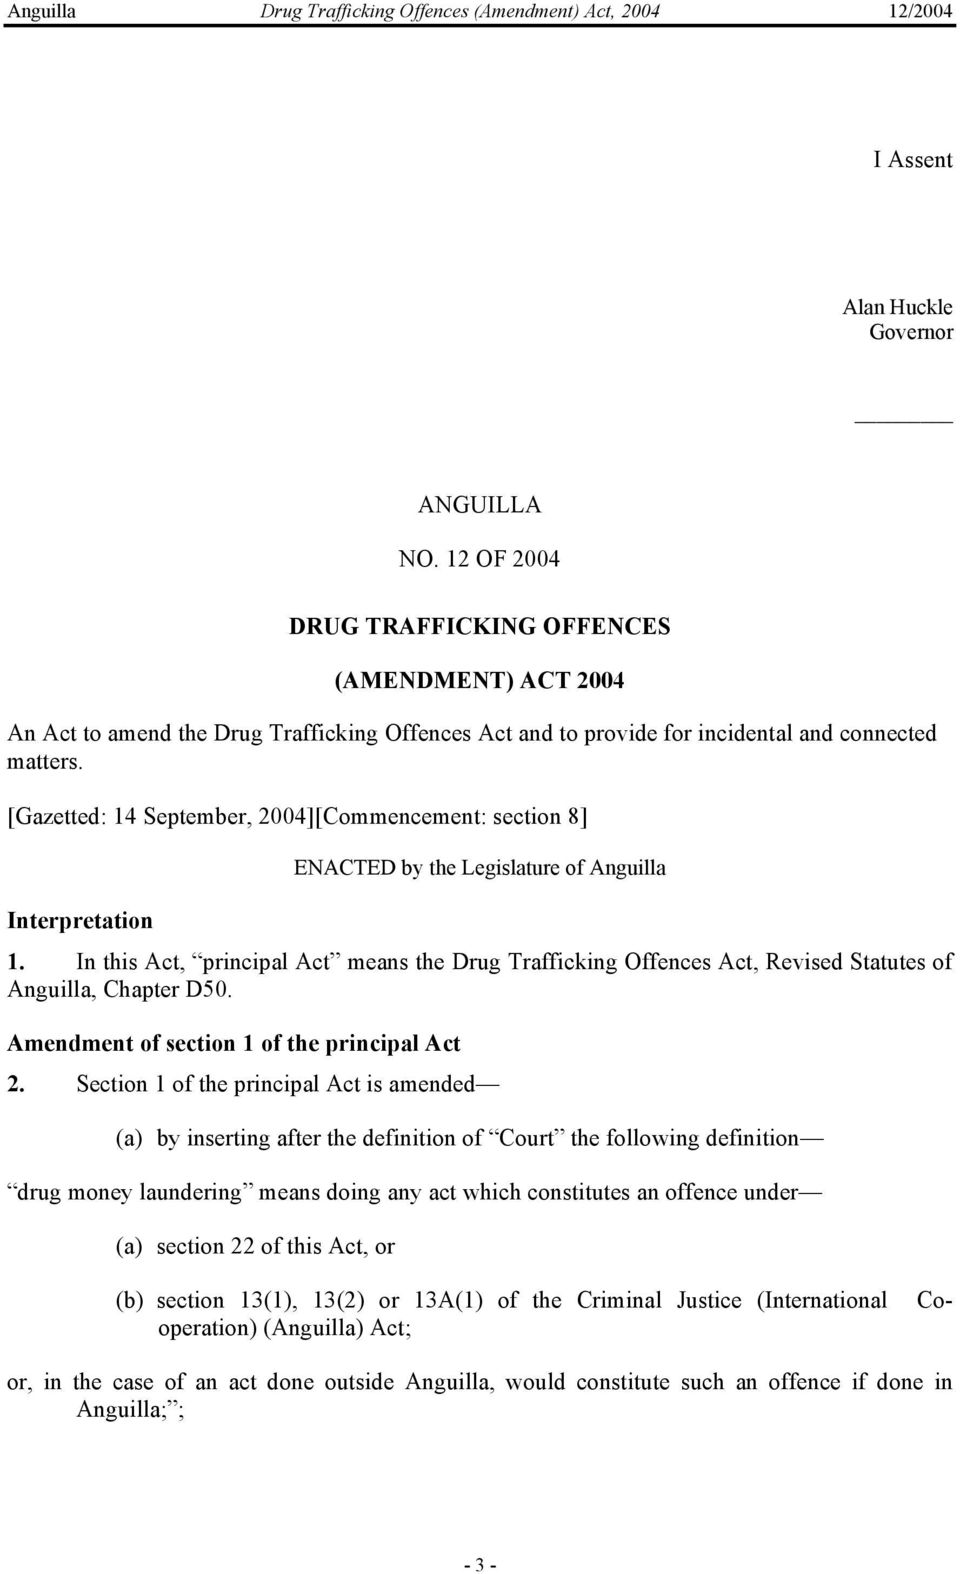 [Gazetted: 14 September, 2004][Commencement: section 8] ENACTED by the Legislature of Anguilla Interpretation 1.